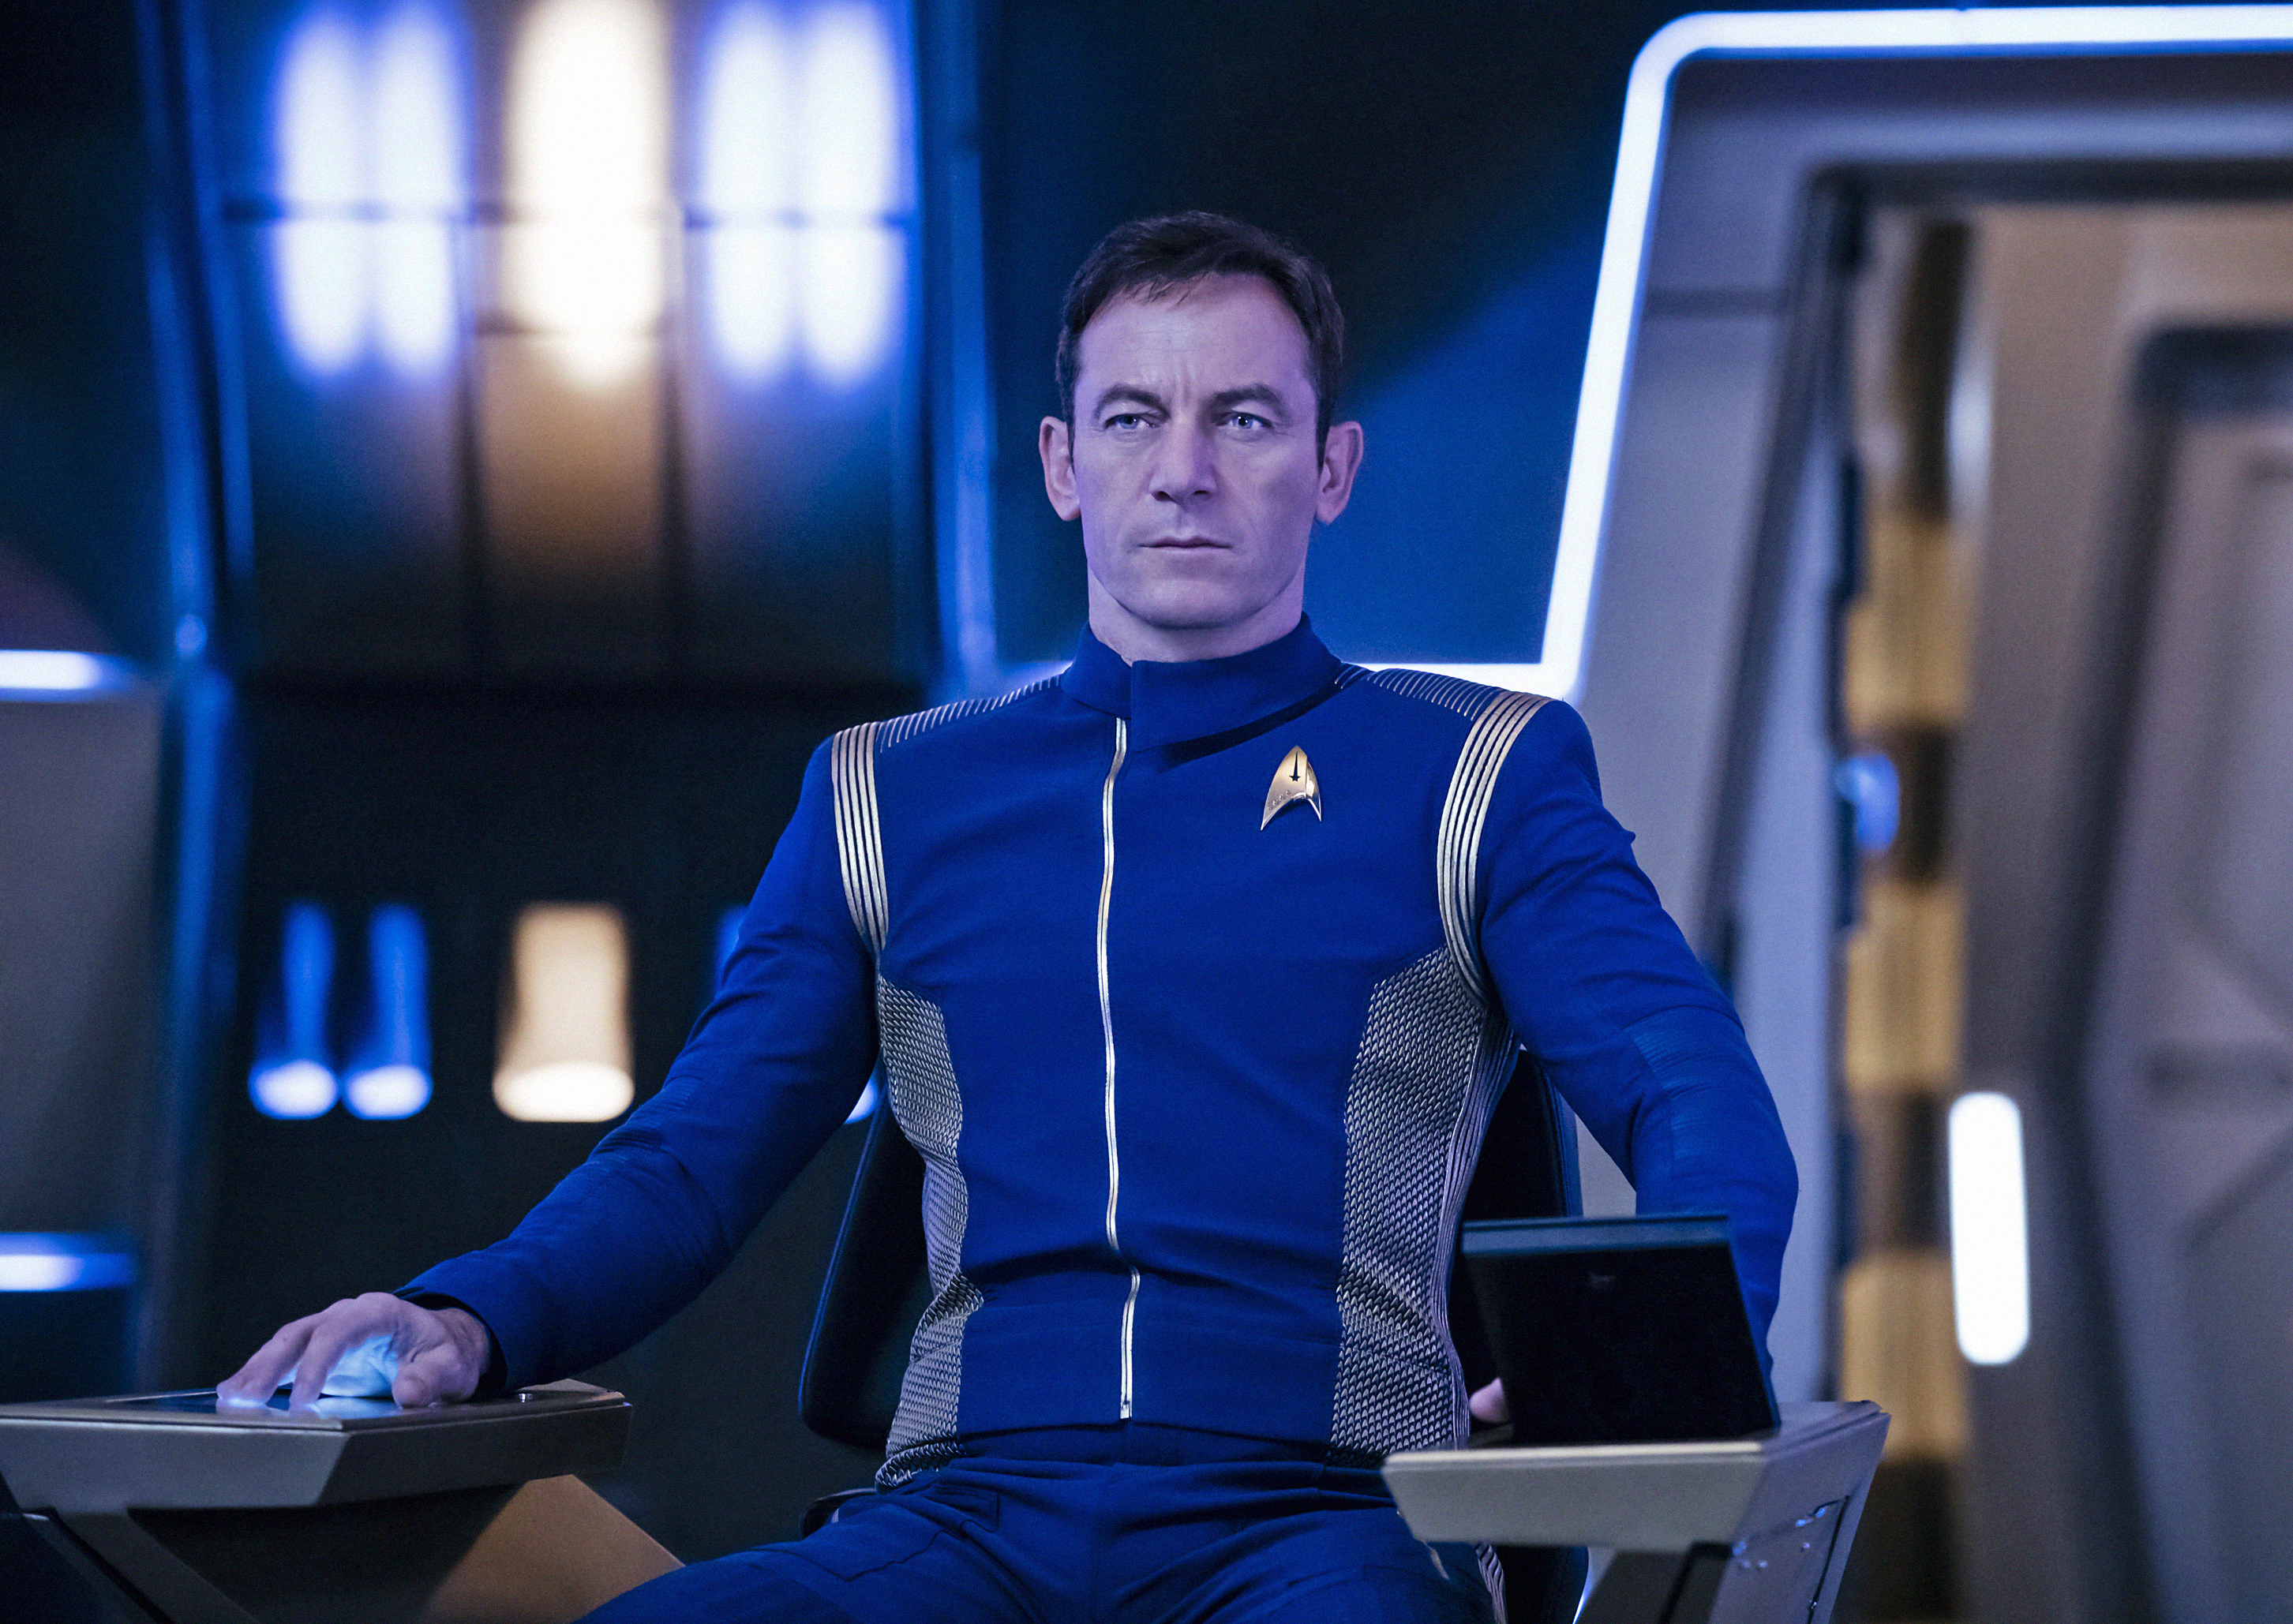 Pictured: Jason Isaacs as Captain Gabriel Lorca. STAR TREK: DISCOVERY coming to CBS All Access.  Photo Cr: Jan Thijs  � 2017 CBS Interactive. All Rights Reserved.